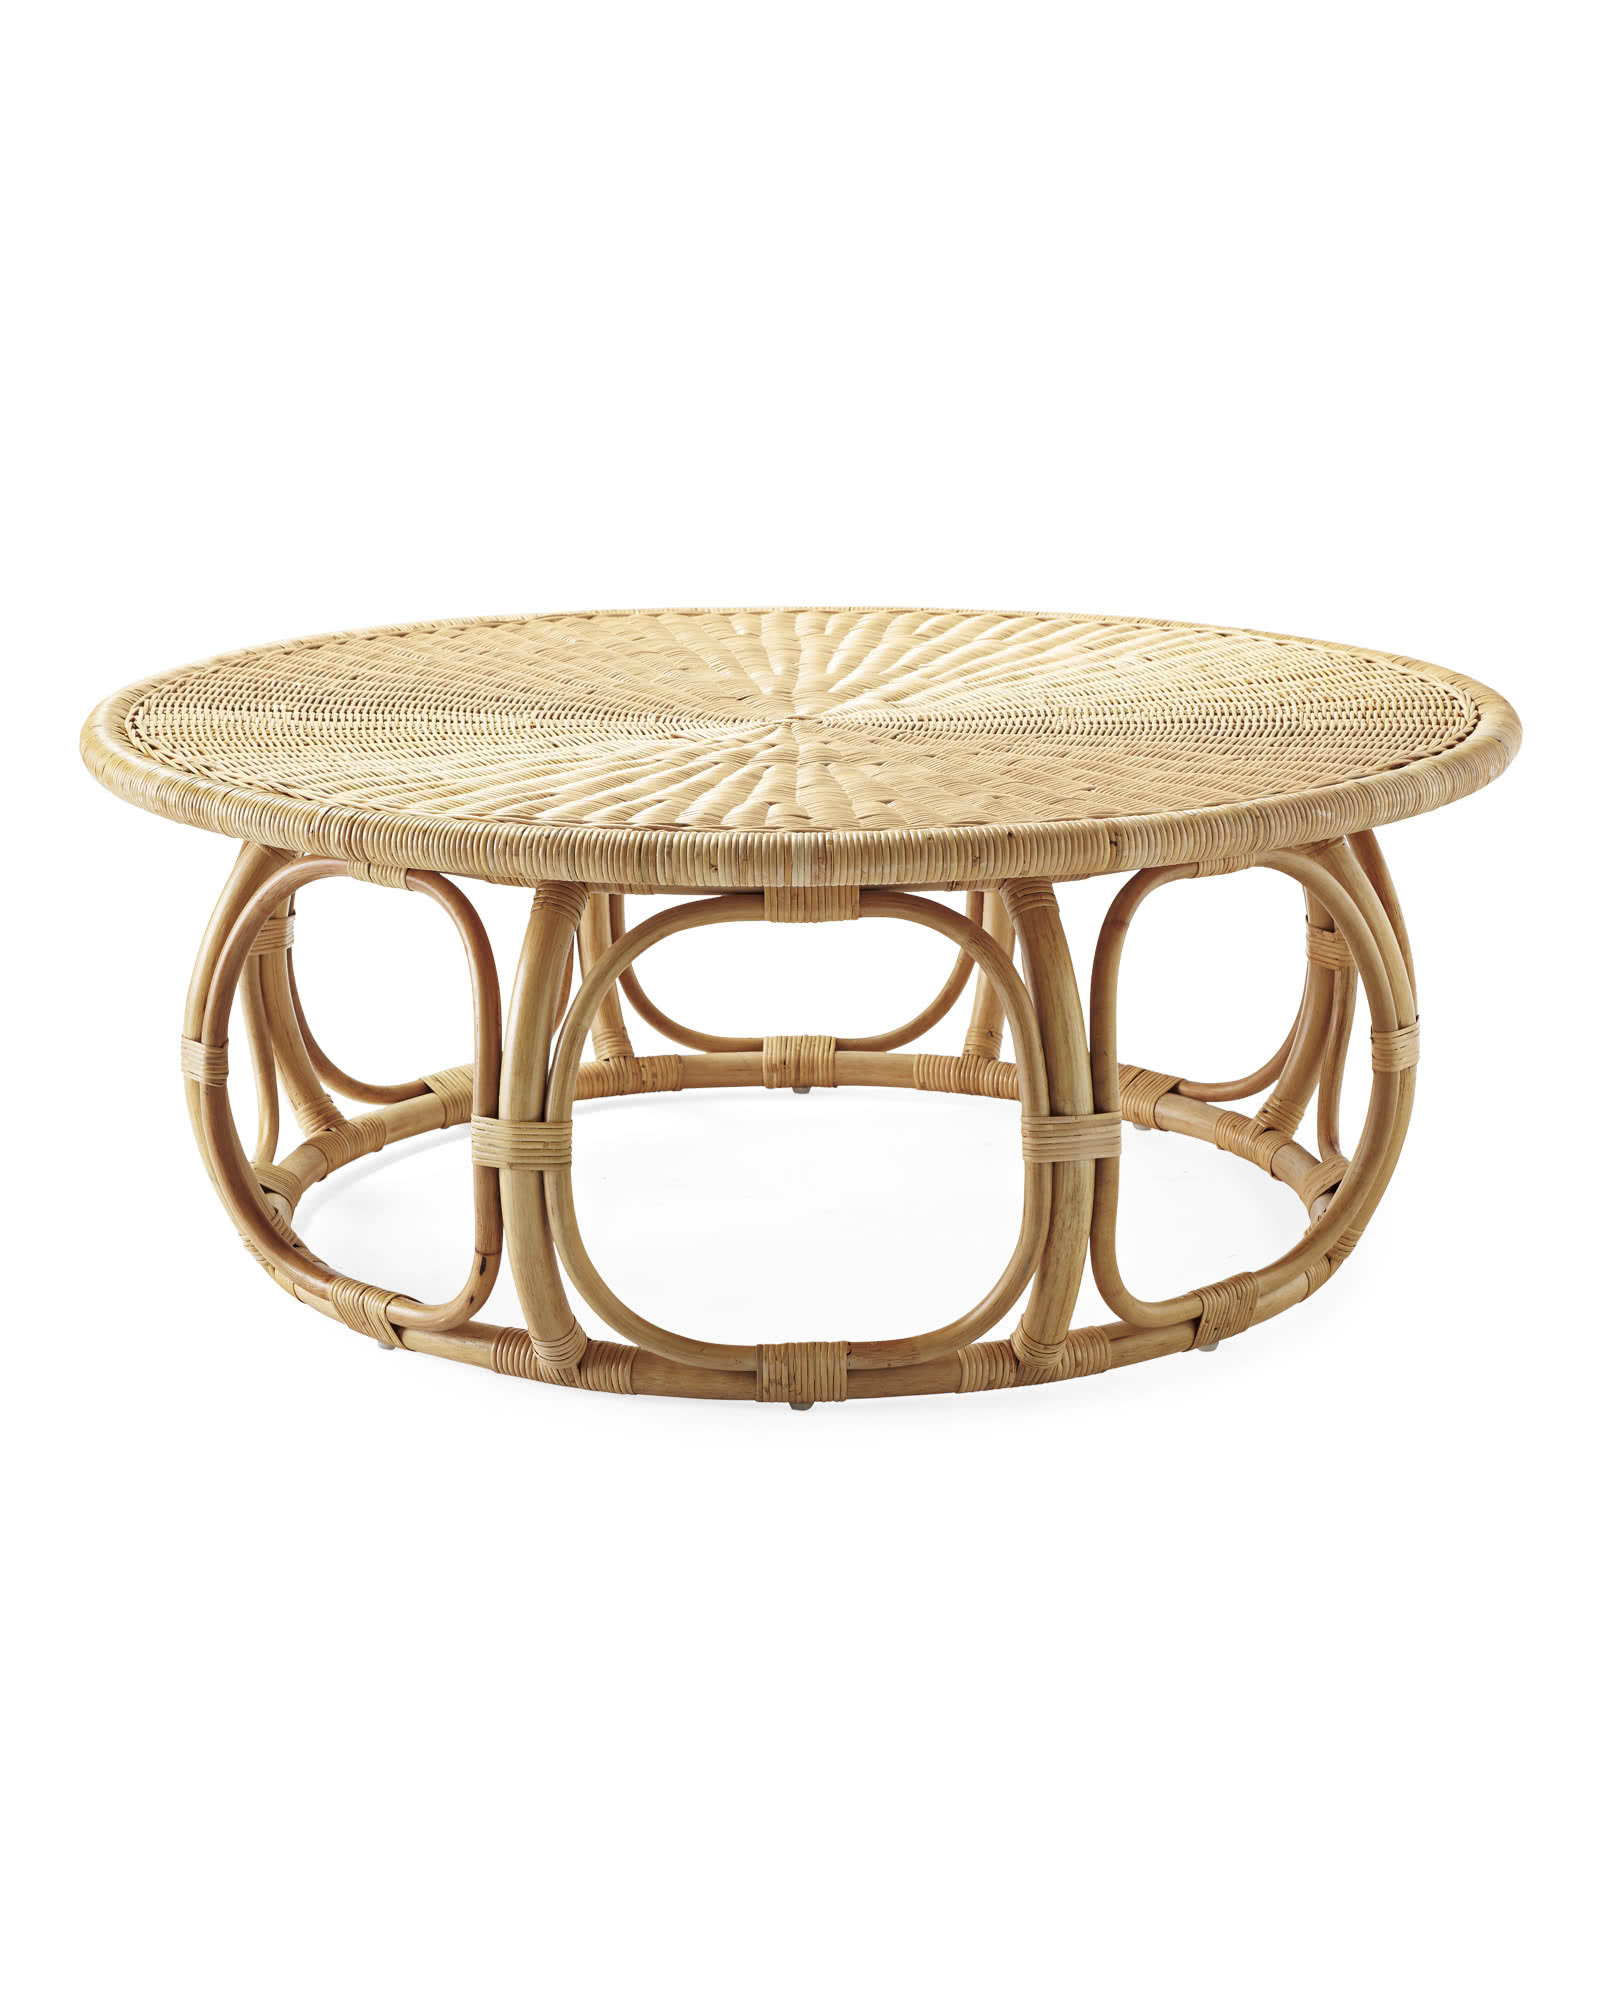 Anguilla Rattan Coffee Table,